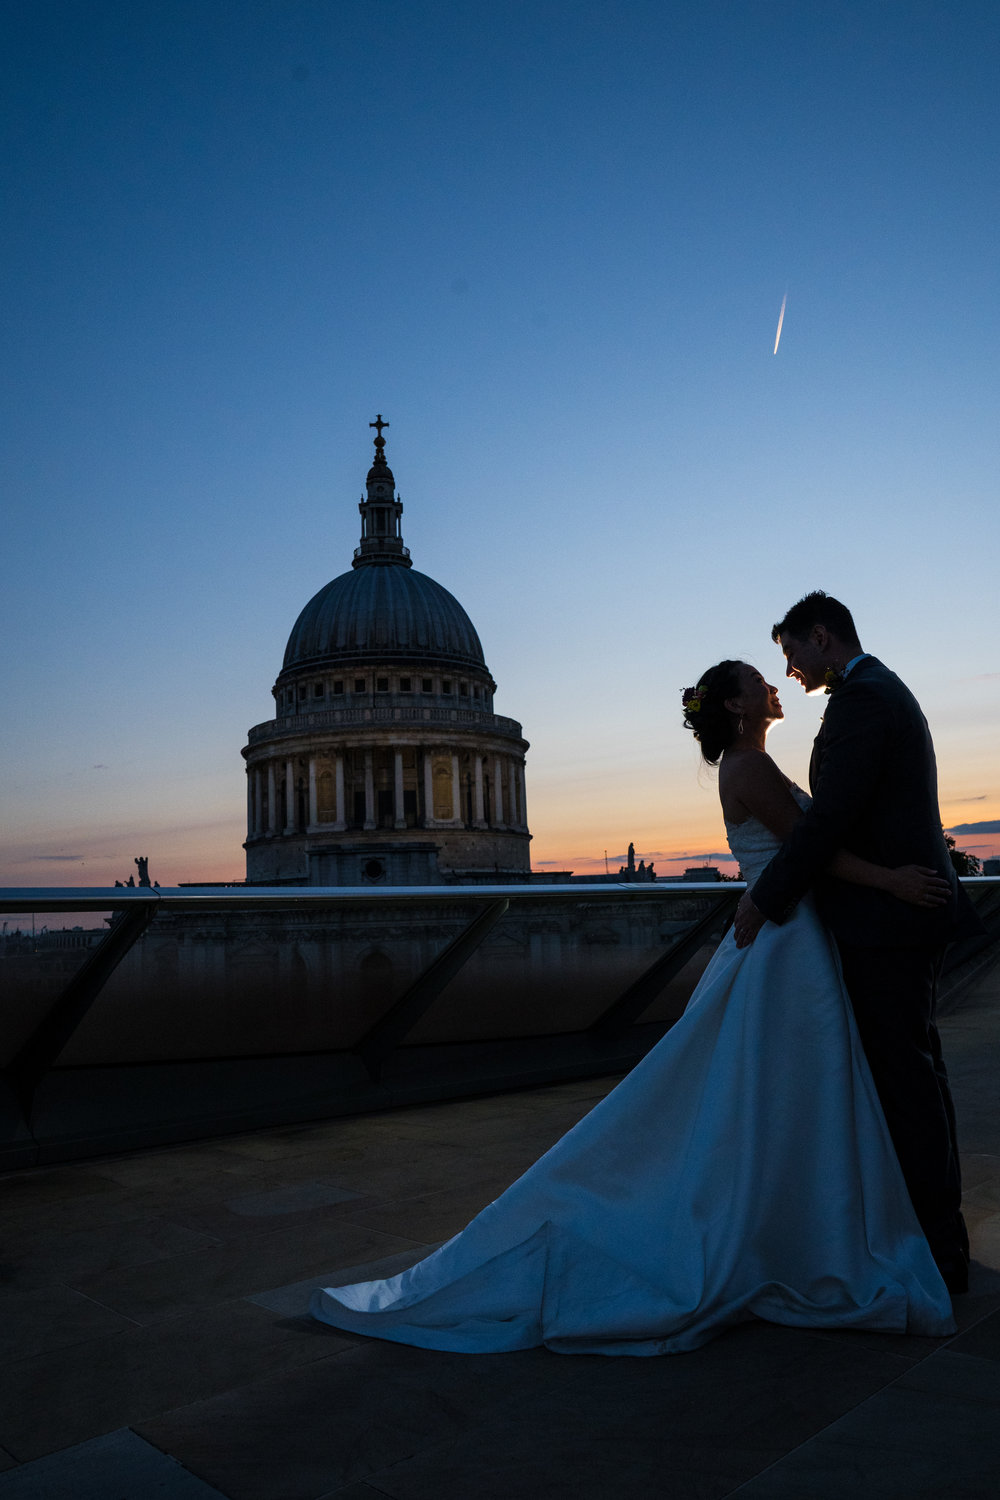 river-rooms-tower-bridge-london-stpauls-mondrian-hotel-wedding-photography-videography-77